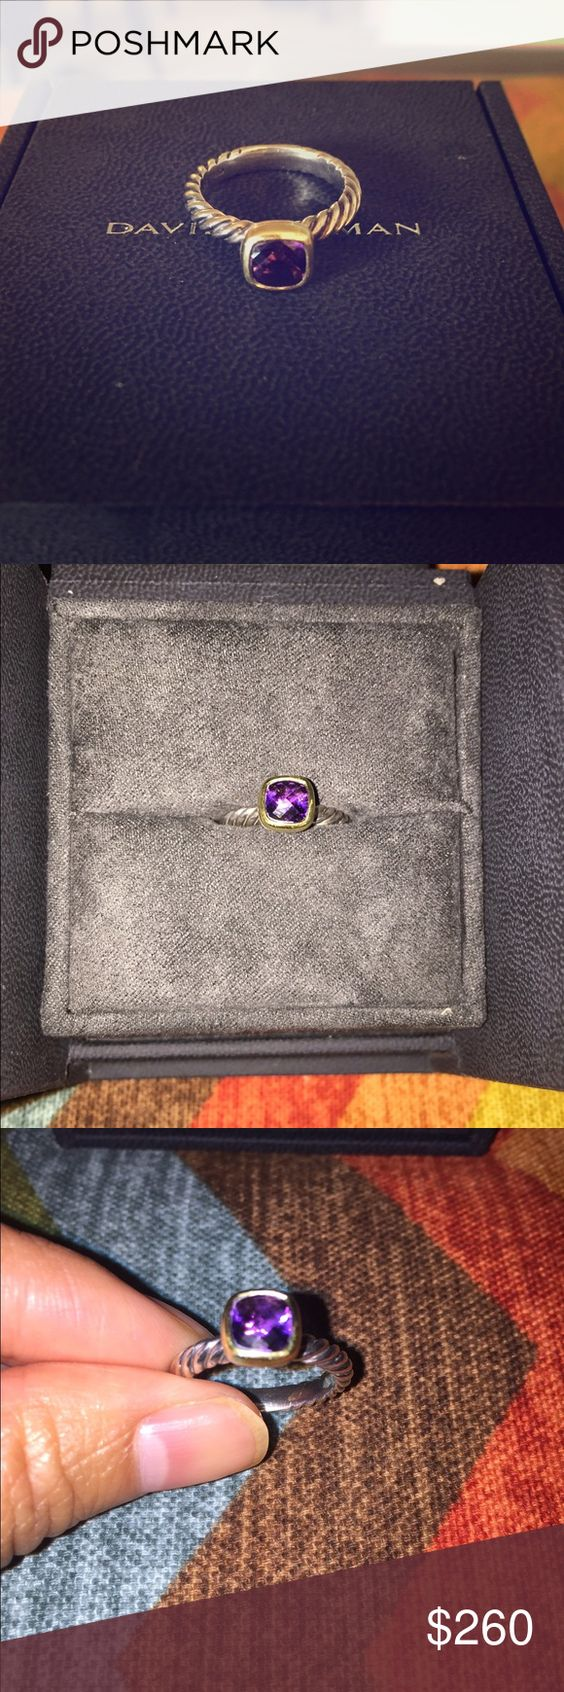 David Yurman Classic Cable Amethyst Ring, Size 7 Sterling silver and 18-karat gold  Faceted amethyst, 6 x 6mm  Other than a few scratches at the back, it is in great condition. Will come in box with never been opened pouch & cloth polish. David Yurman Jewelry Rings